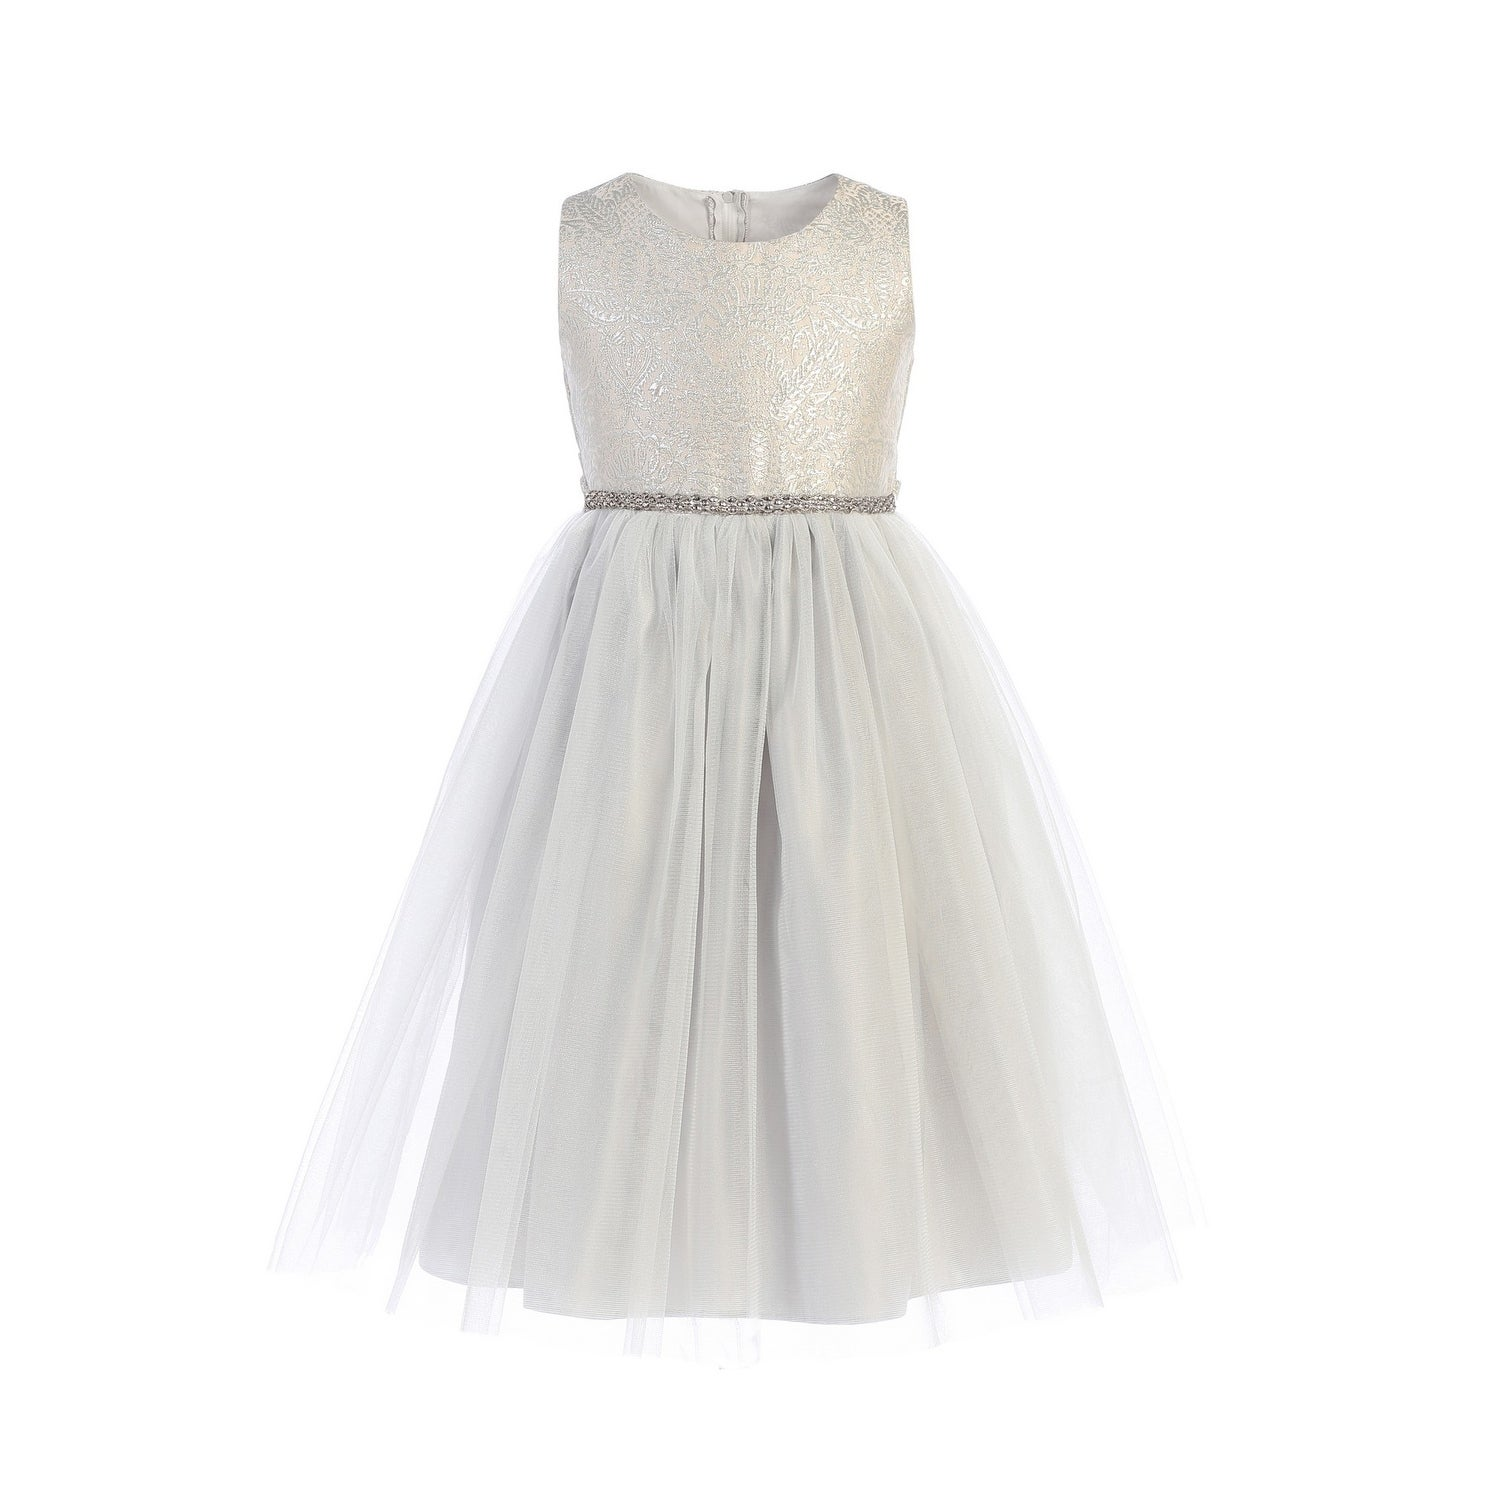 360340a1e7cb Shop Sweet Kids Little Girls Silver Ornate Brocade Crystal Tulle Christmas  Dress - Free Shipping Today - Overstock - 23103652